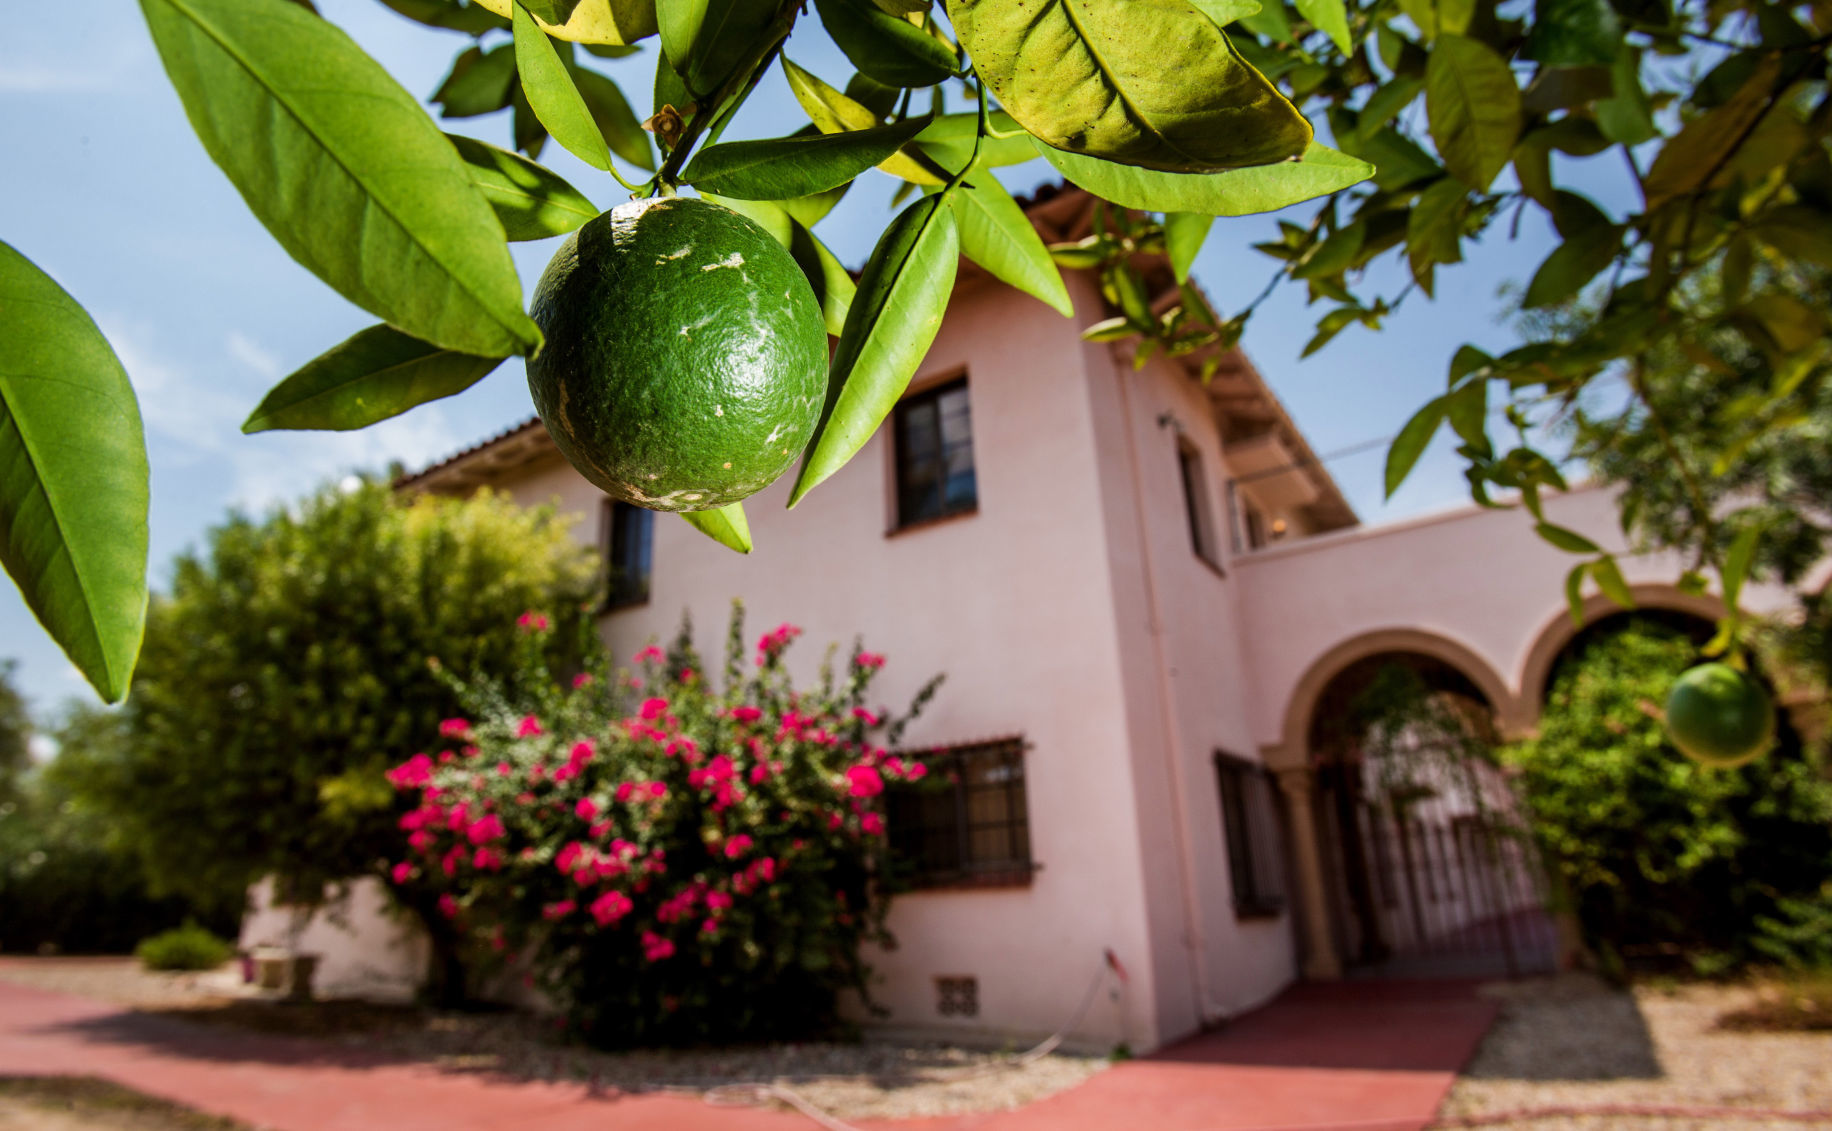 Some historic trees at Tucson monastery trees will be saved | Tucson.com